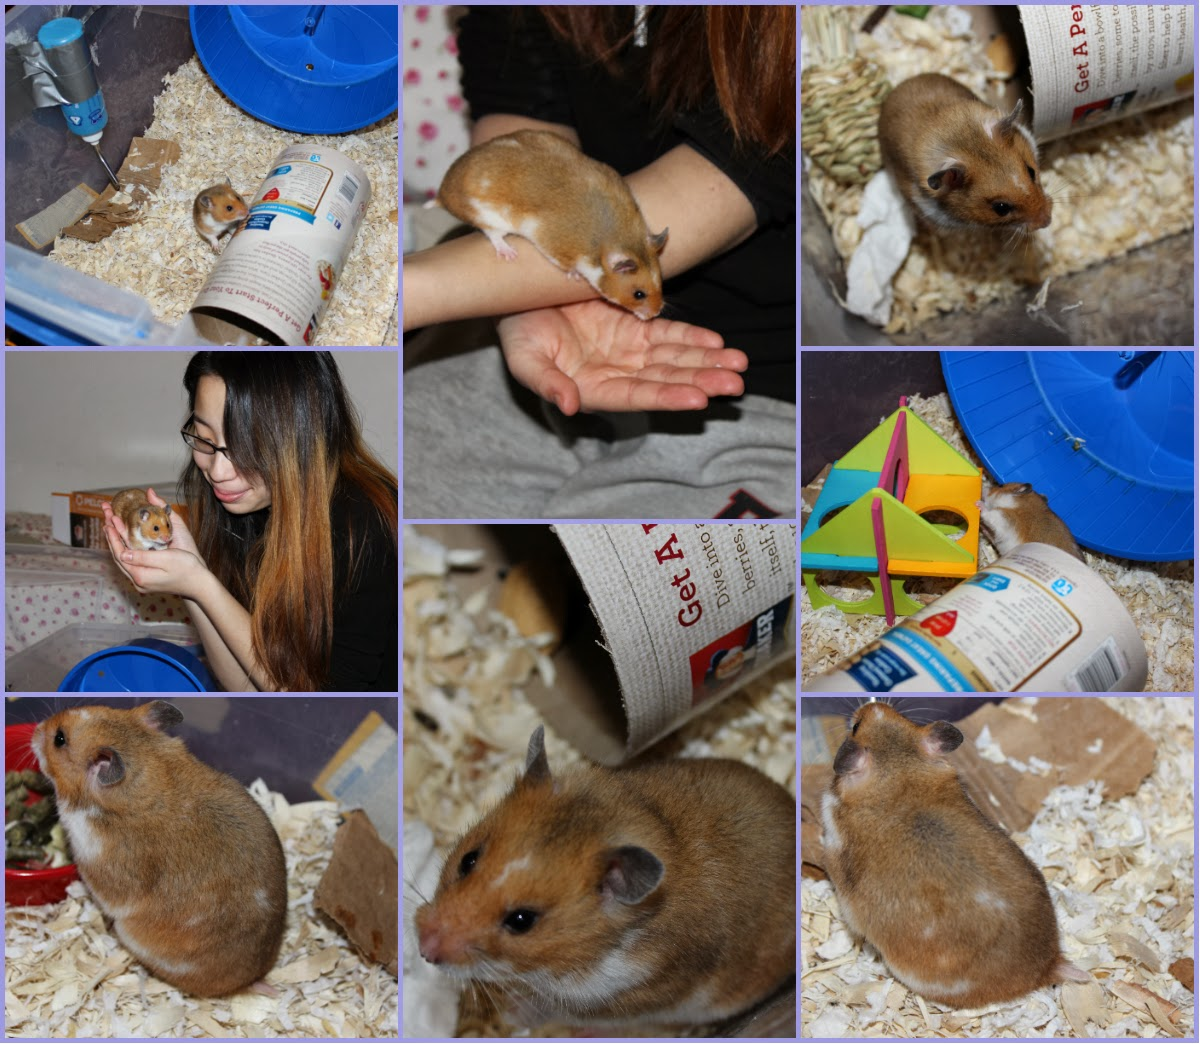 Hamster Pictures 2014